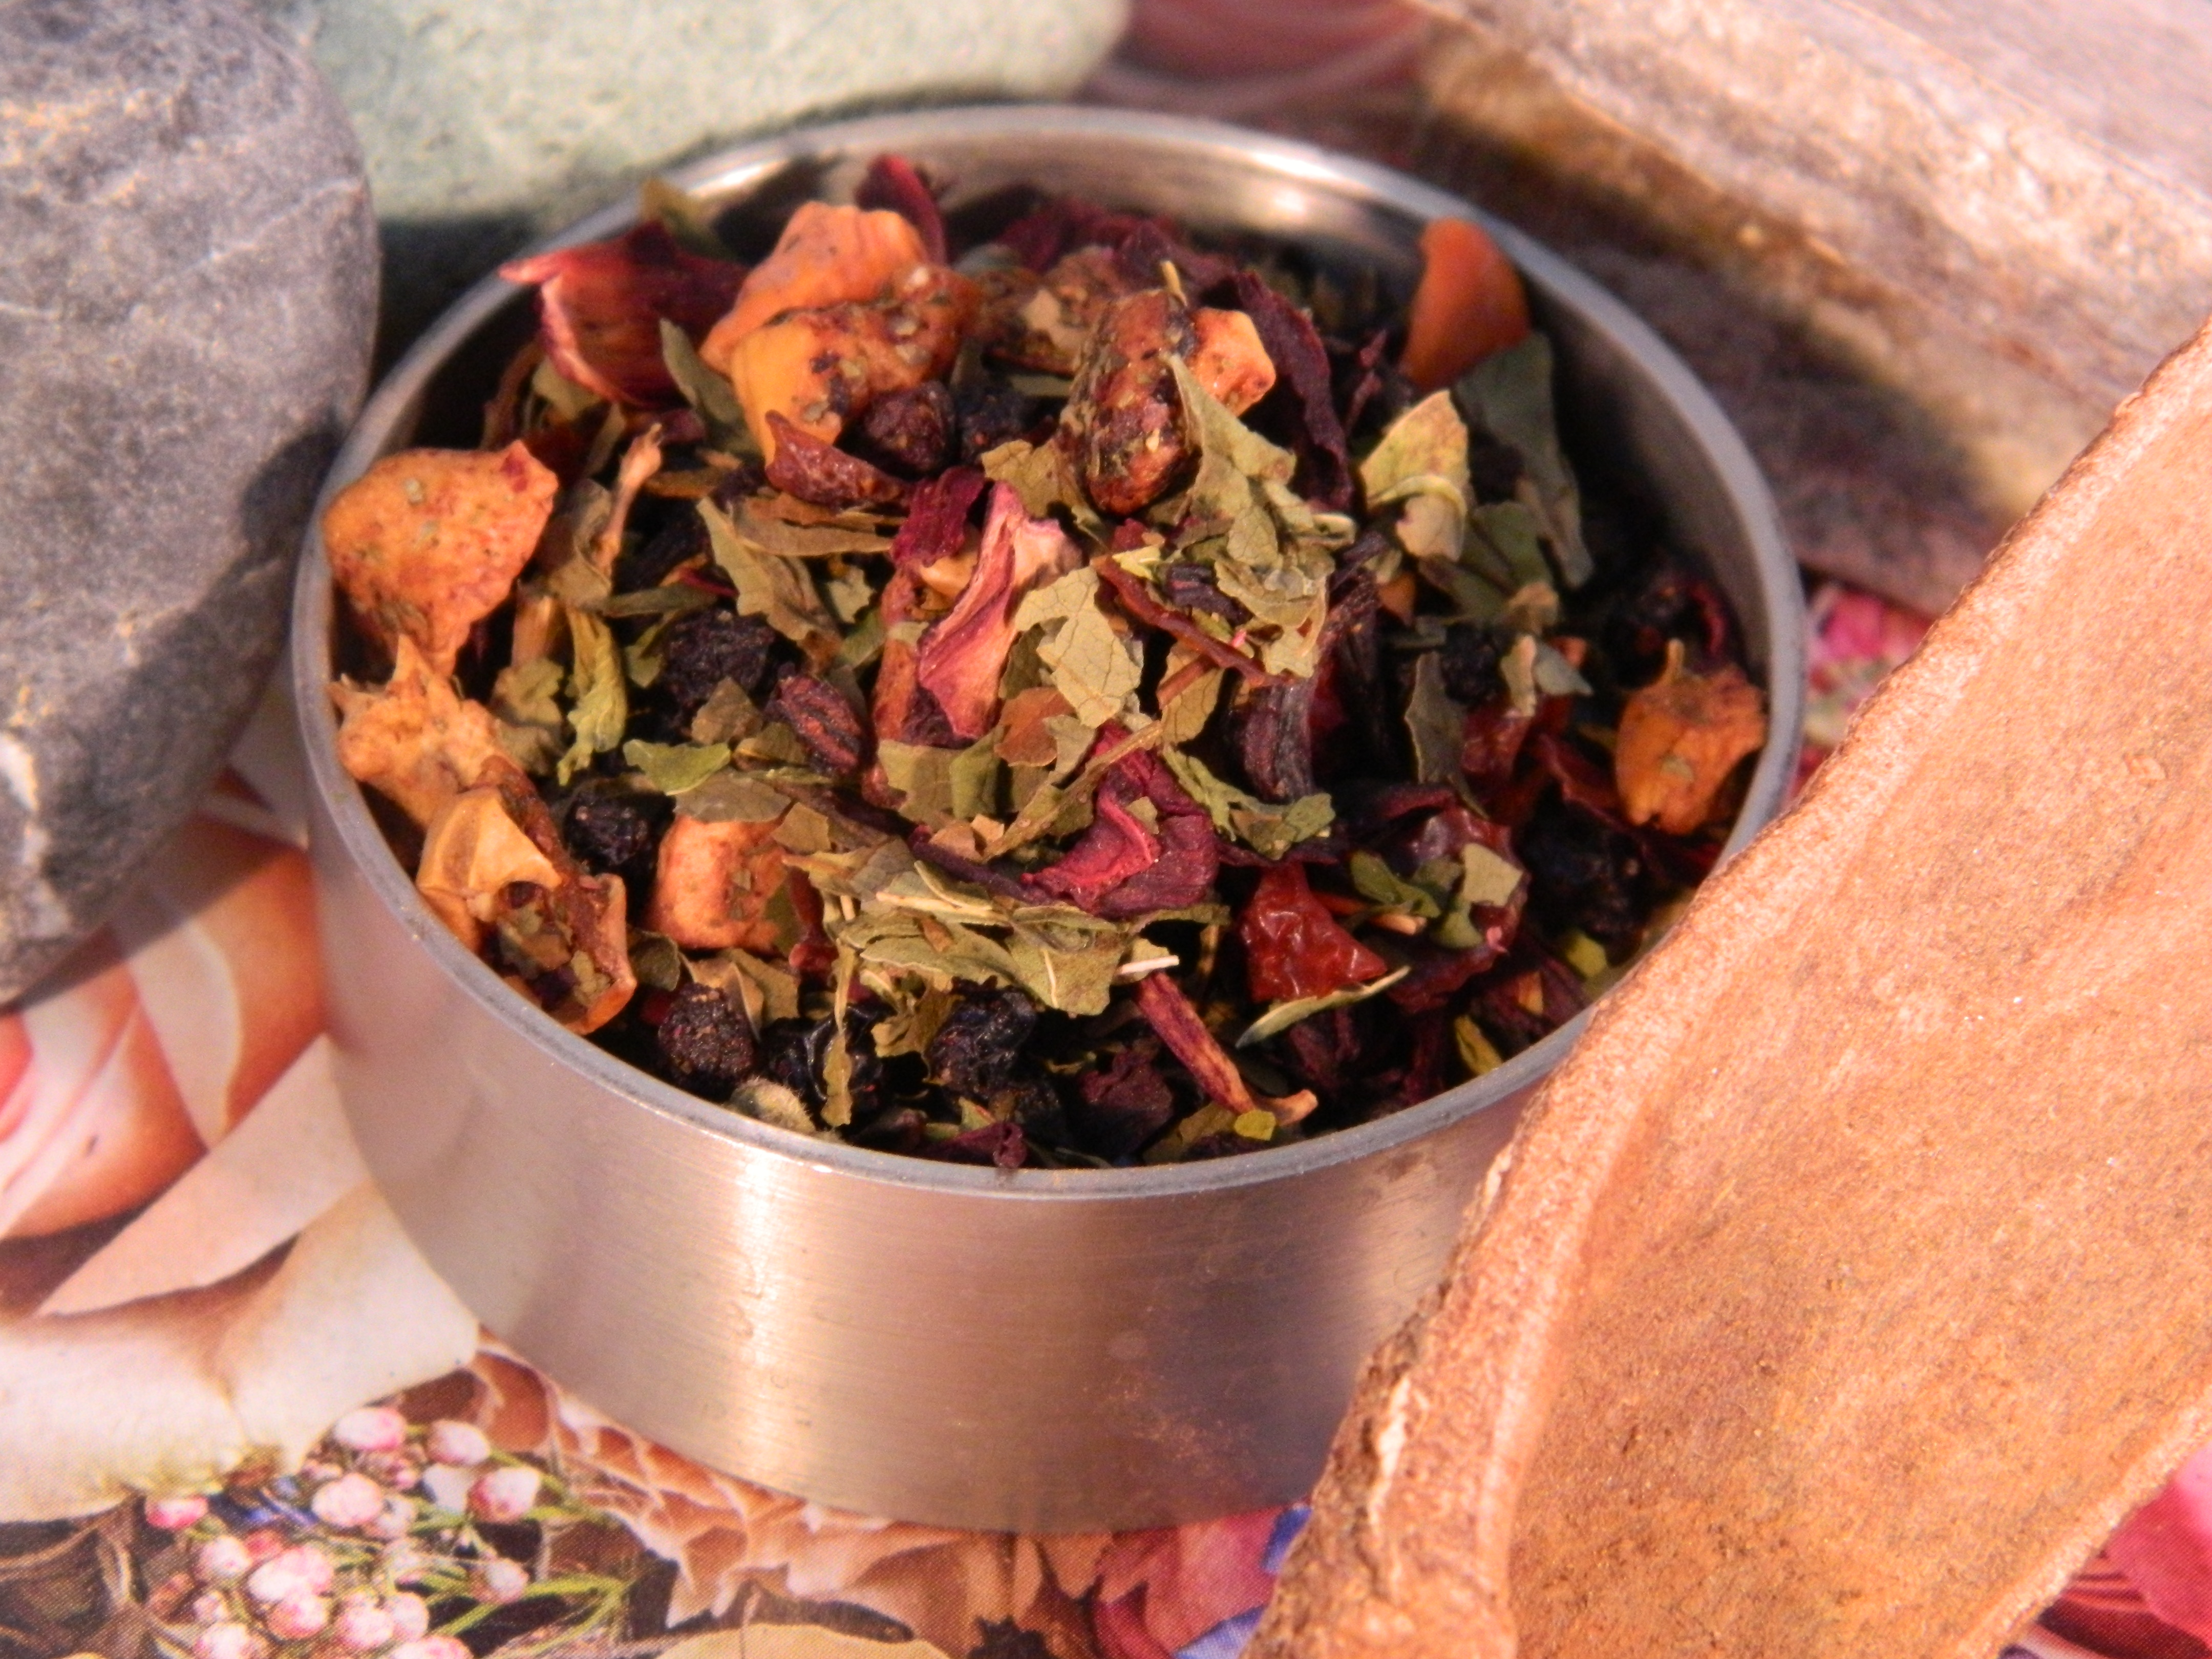 Fruit Punch Mothers Day Blend